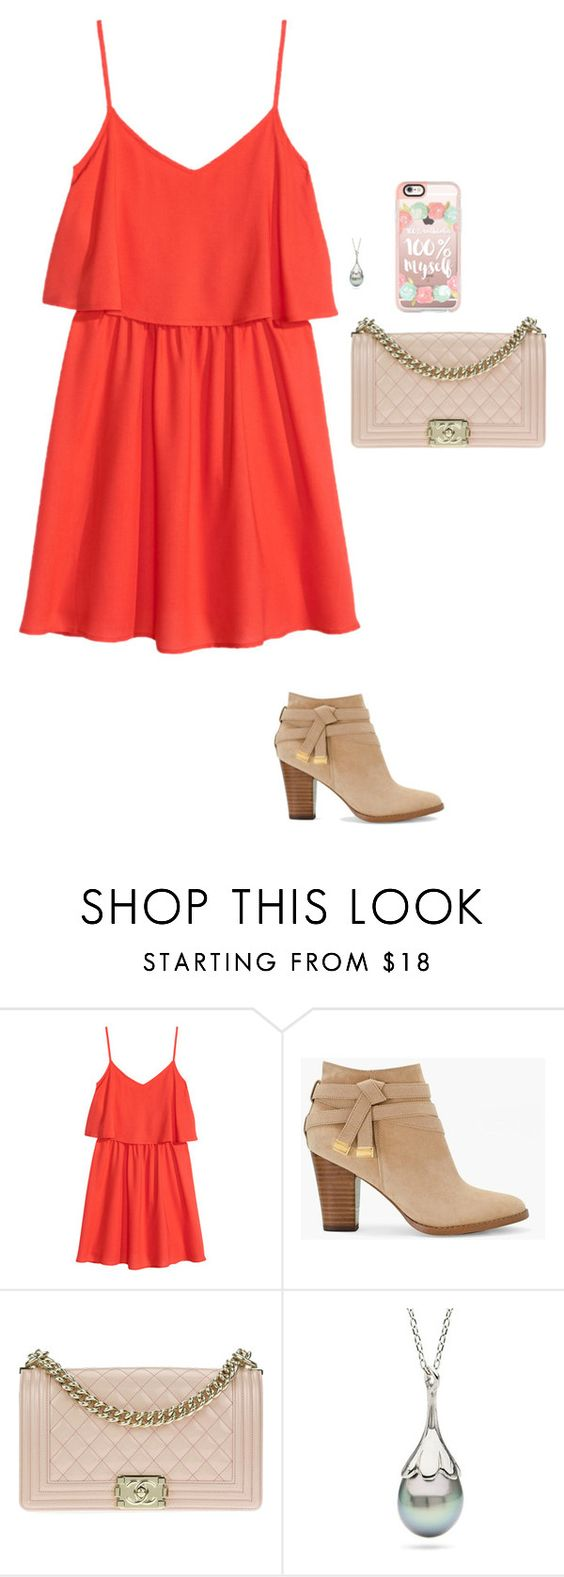 """""""Untitled #30"""" by mia-tox ❤ liked on Polyvore featuring H&M, White House Black Market, Chanel and Casetify"""